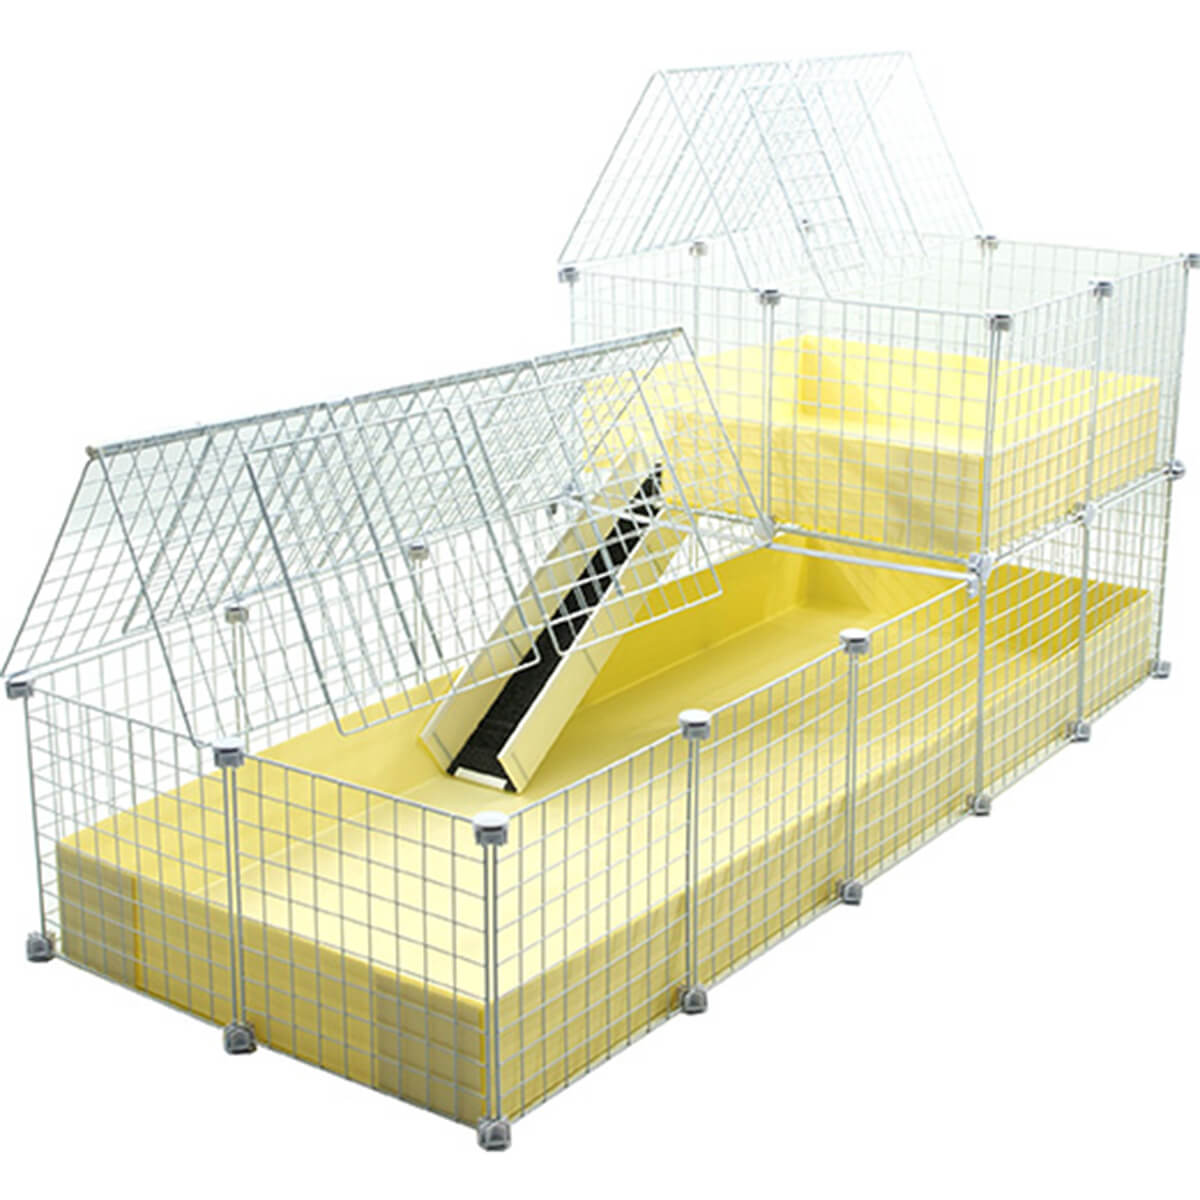 xl partially open C&C cage